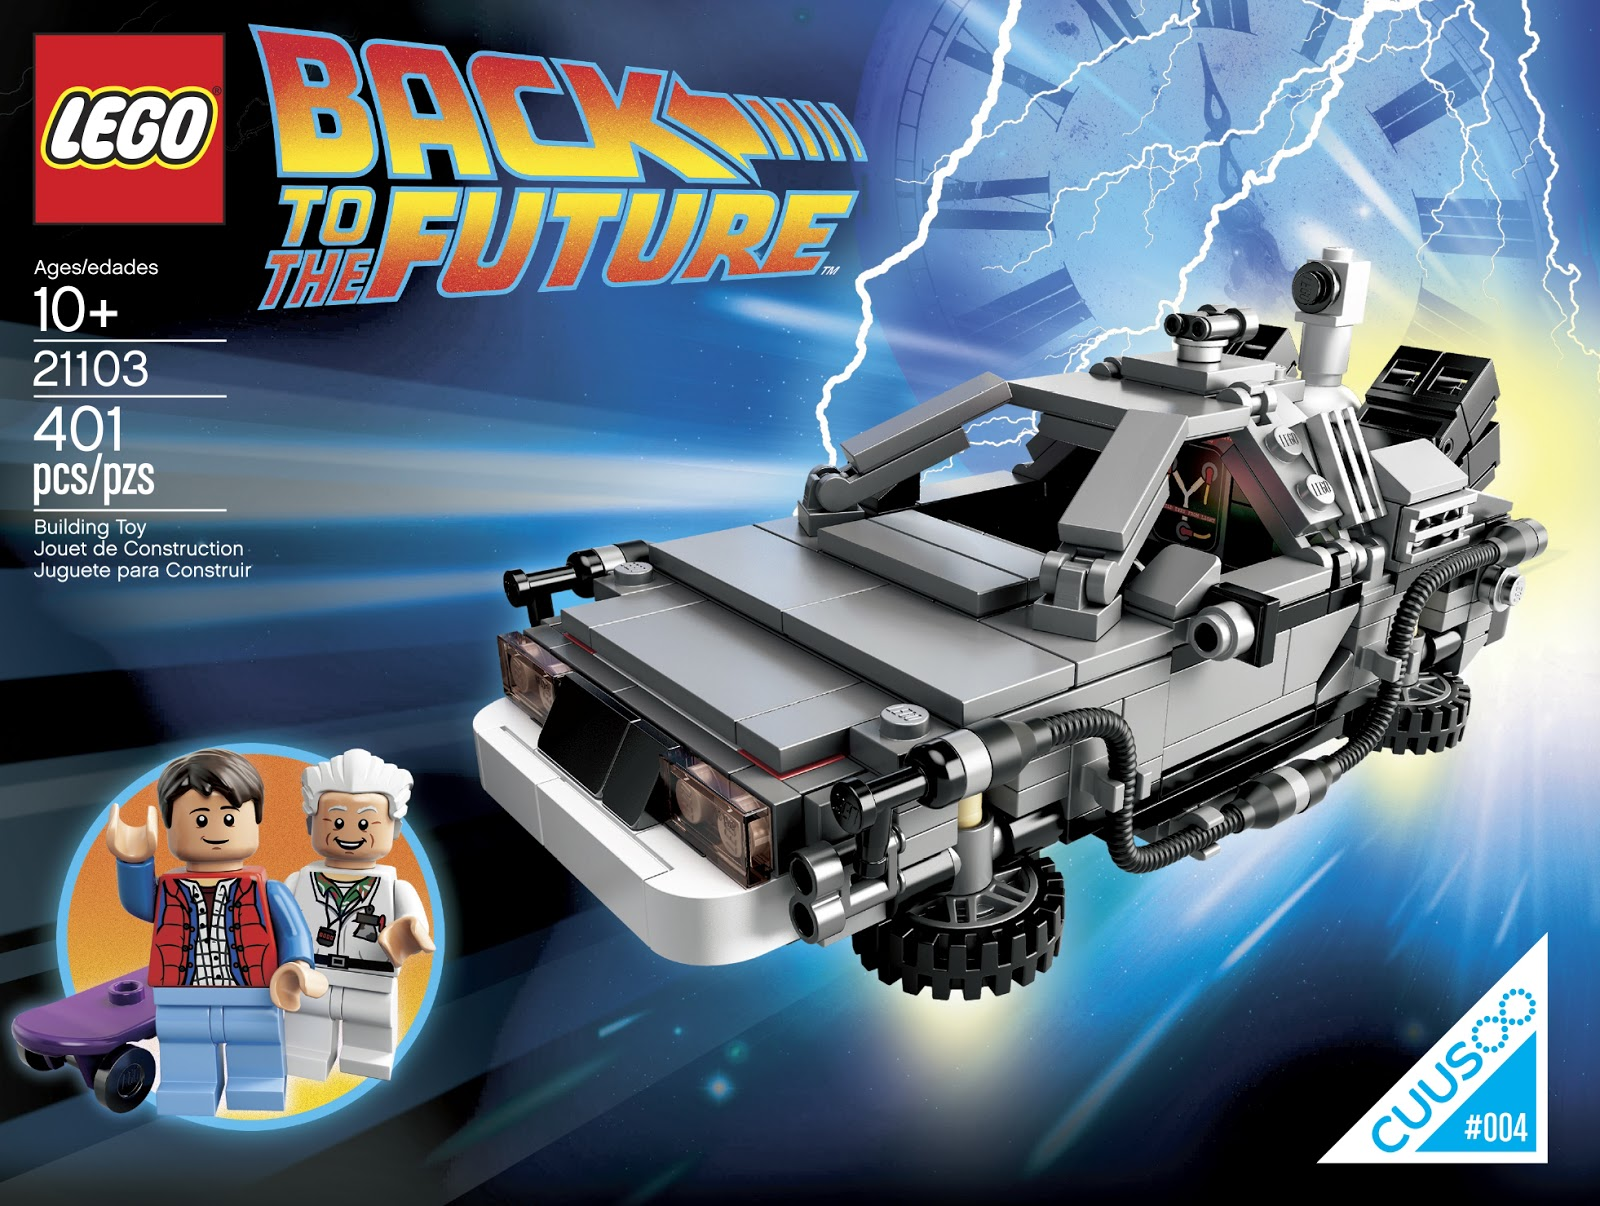 The Brickverse Official Images Of The Back To The Future